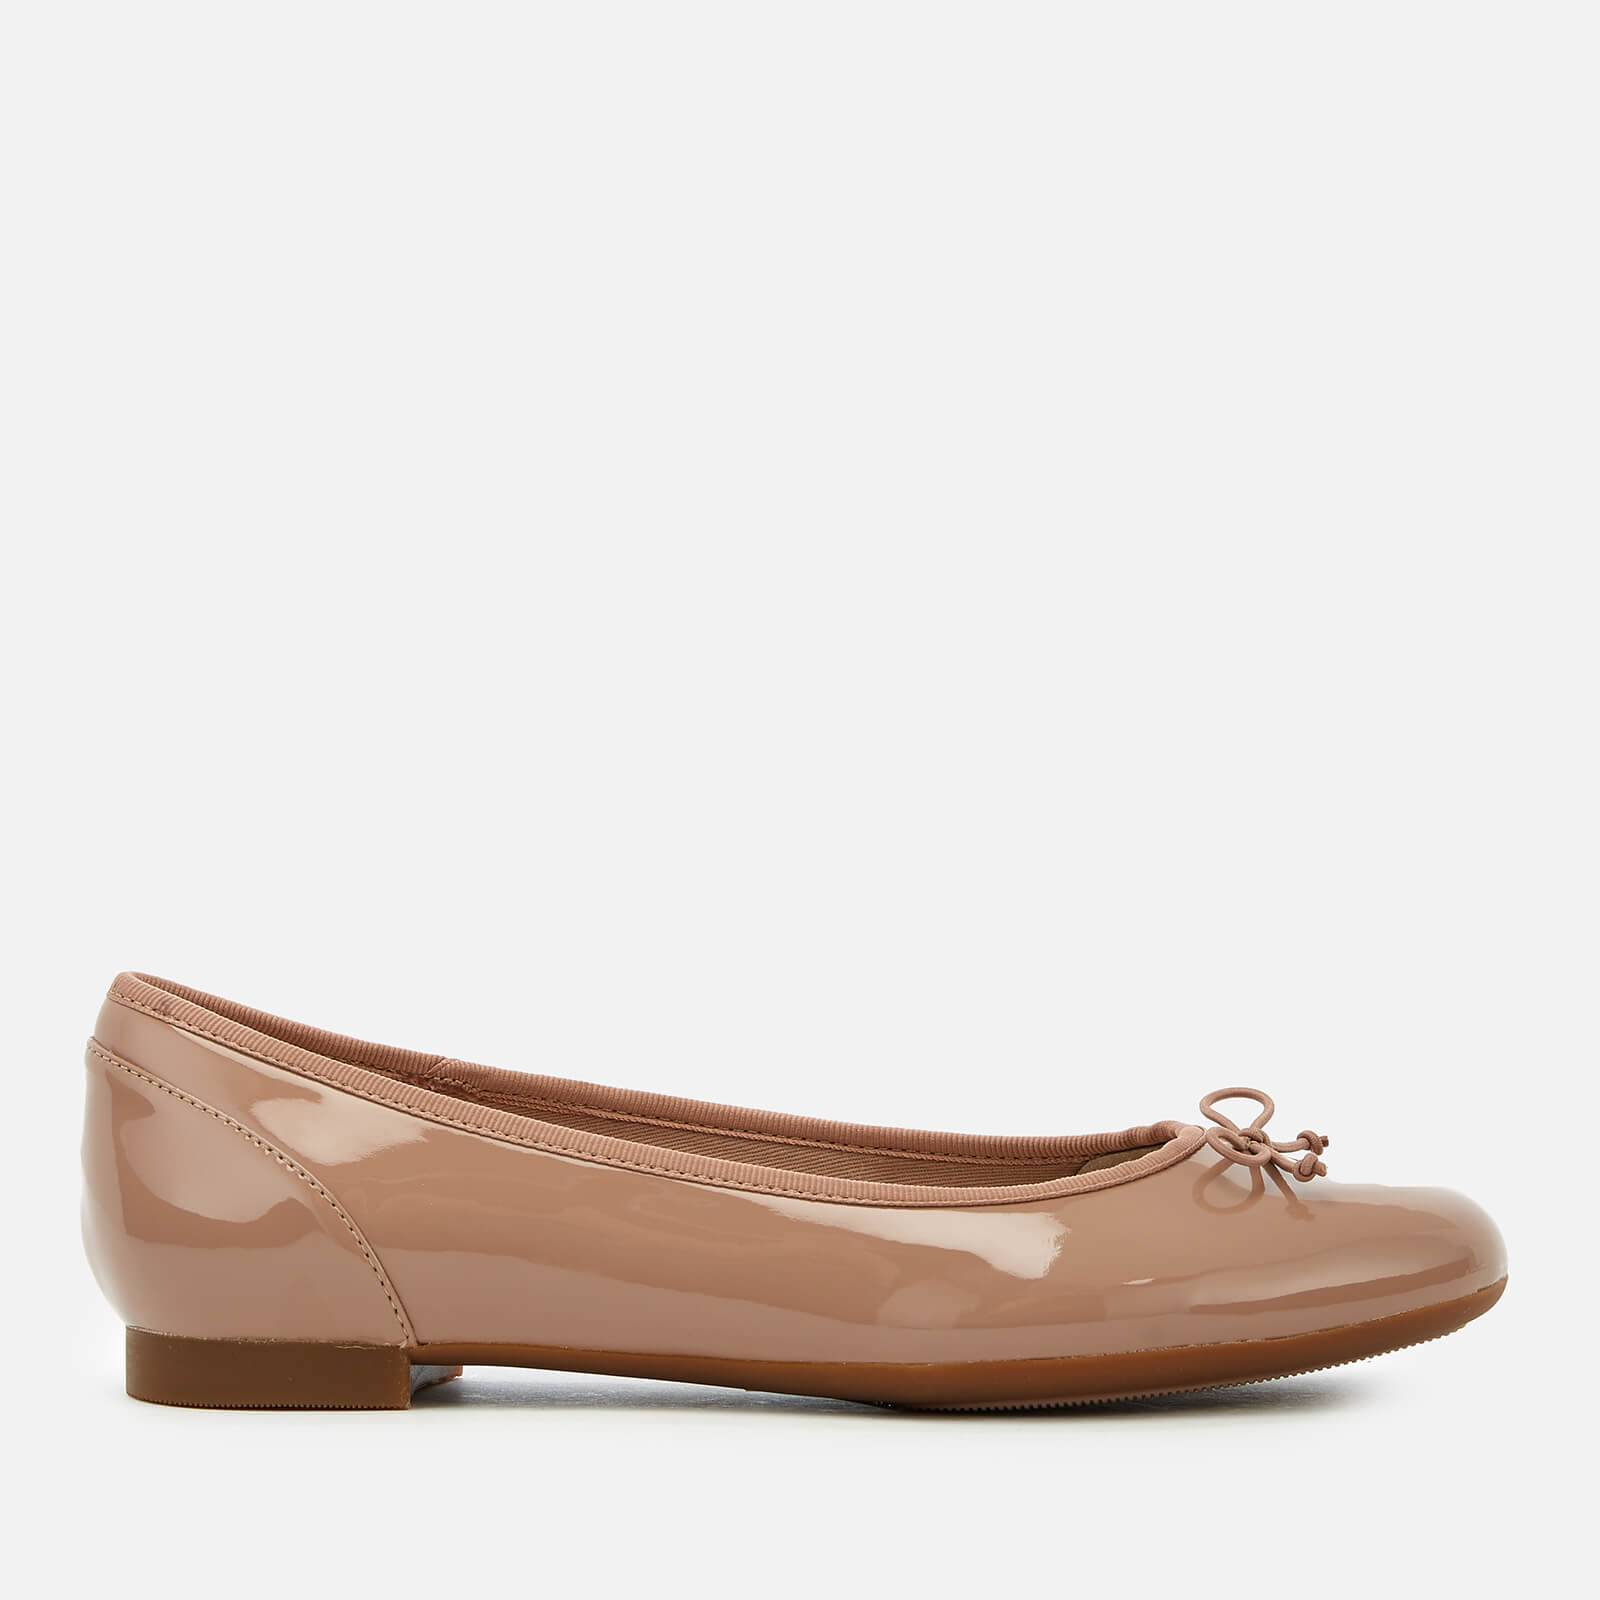 Clarks Women's Couture Bloom Patent Leather Ballet Pumps - Nude - UK 8